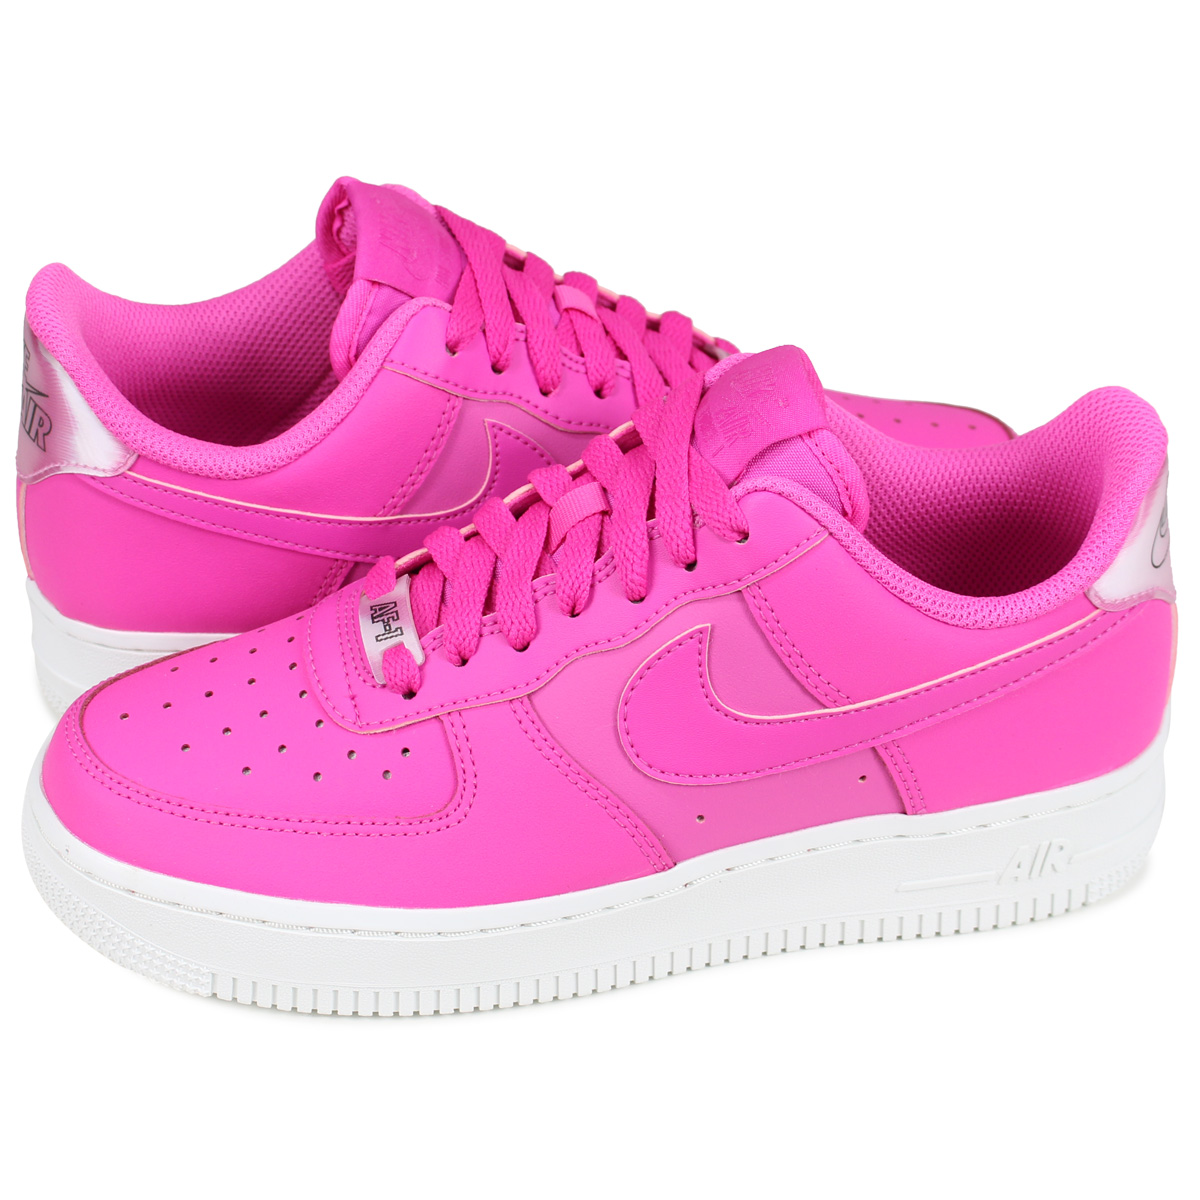 online retailer 45b2d 12796 Nike NIKE air force 1 sneakers Lady s WMNS AIR FORCE 1 07 ESSENTIAL pink  AO2132-600  4 19 Shinnyu load   194